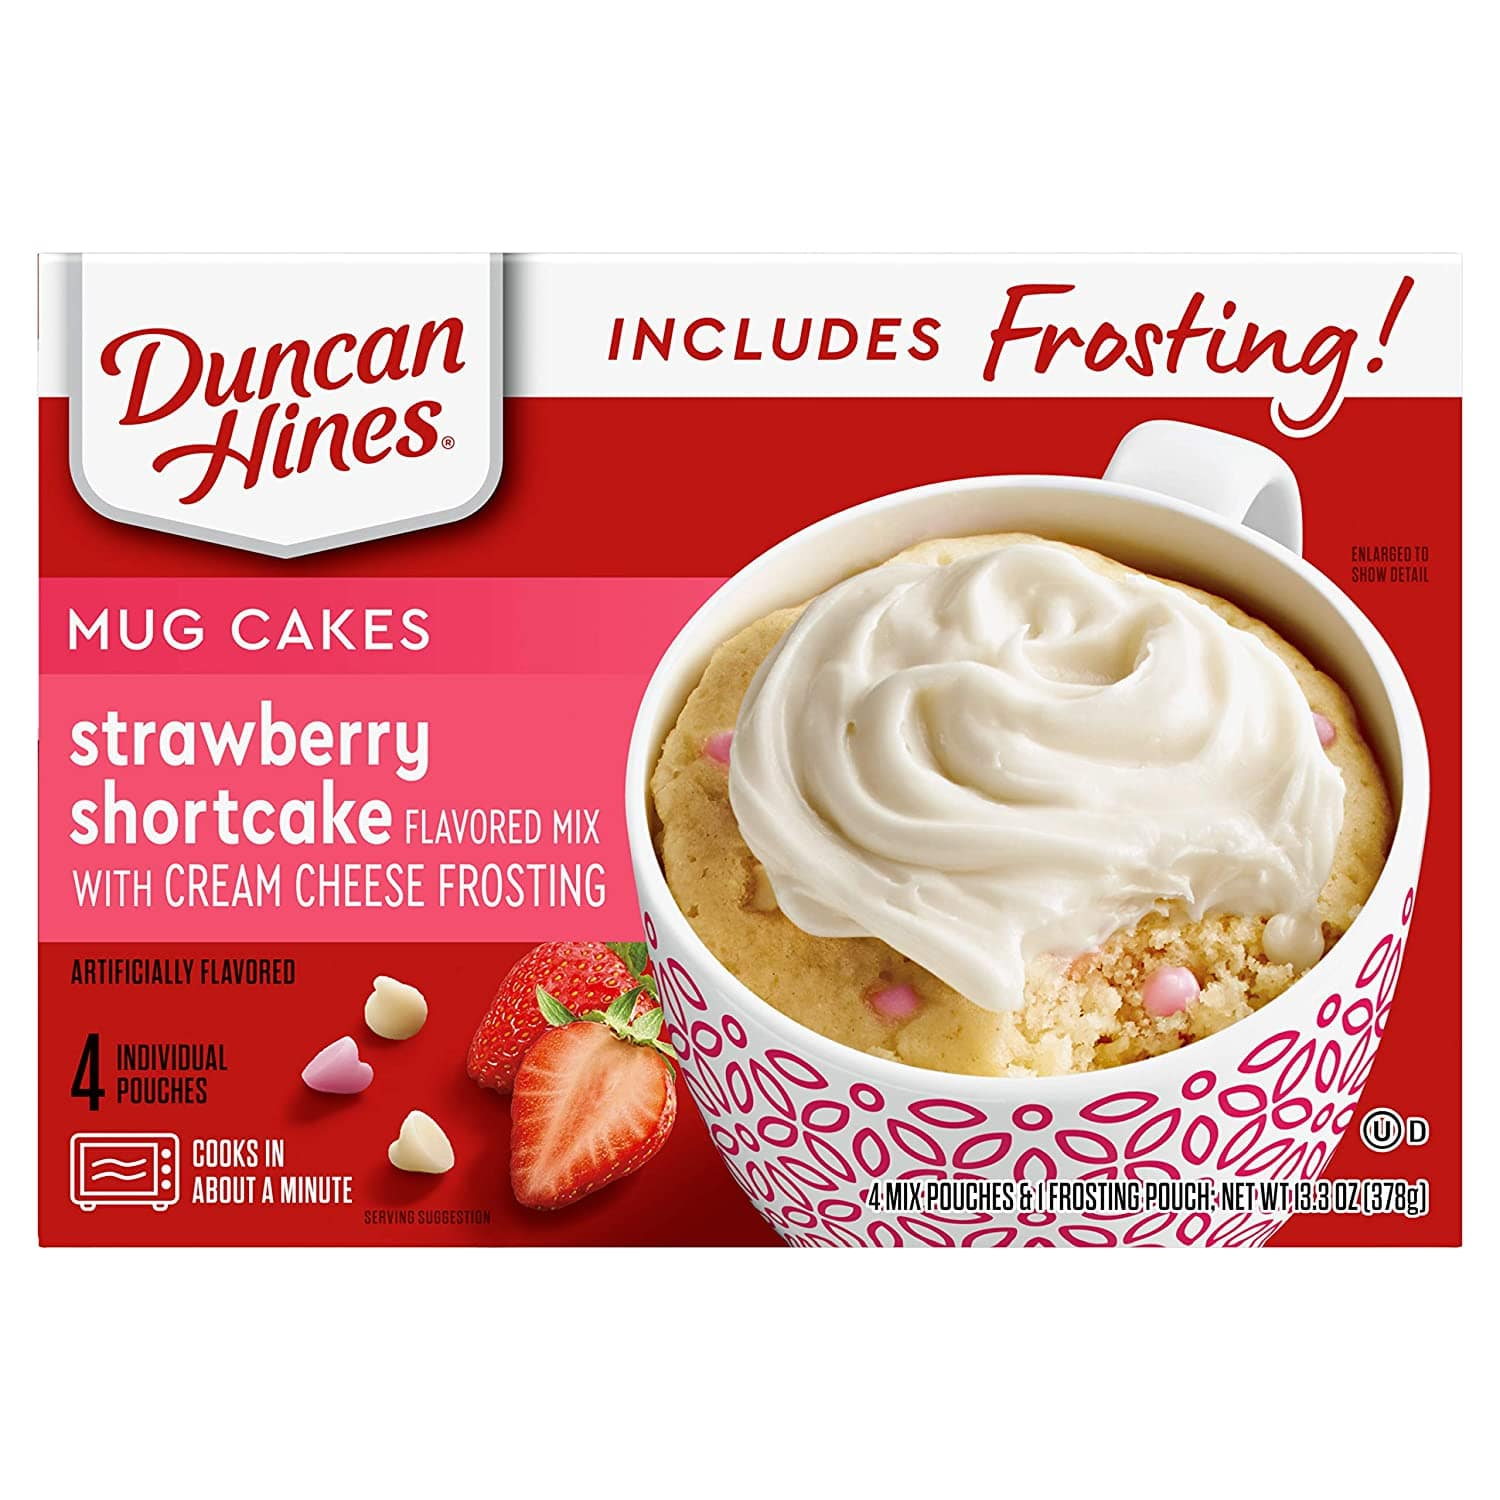 4-Ct Duncan Hines Mug Cakes (Strawberry Shortcake, Caramel Flavored Brownie) $2.40 & More  w/ S&S + Free S&H w/ Prime or $25+